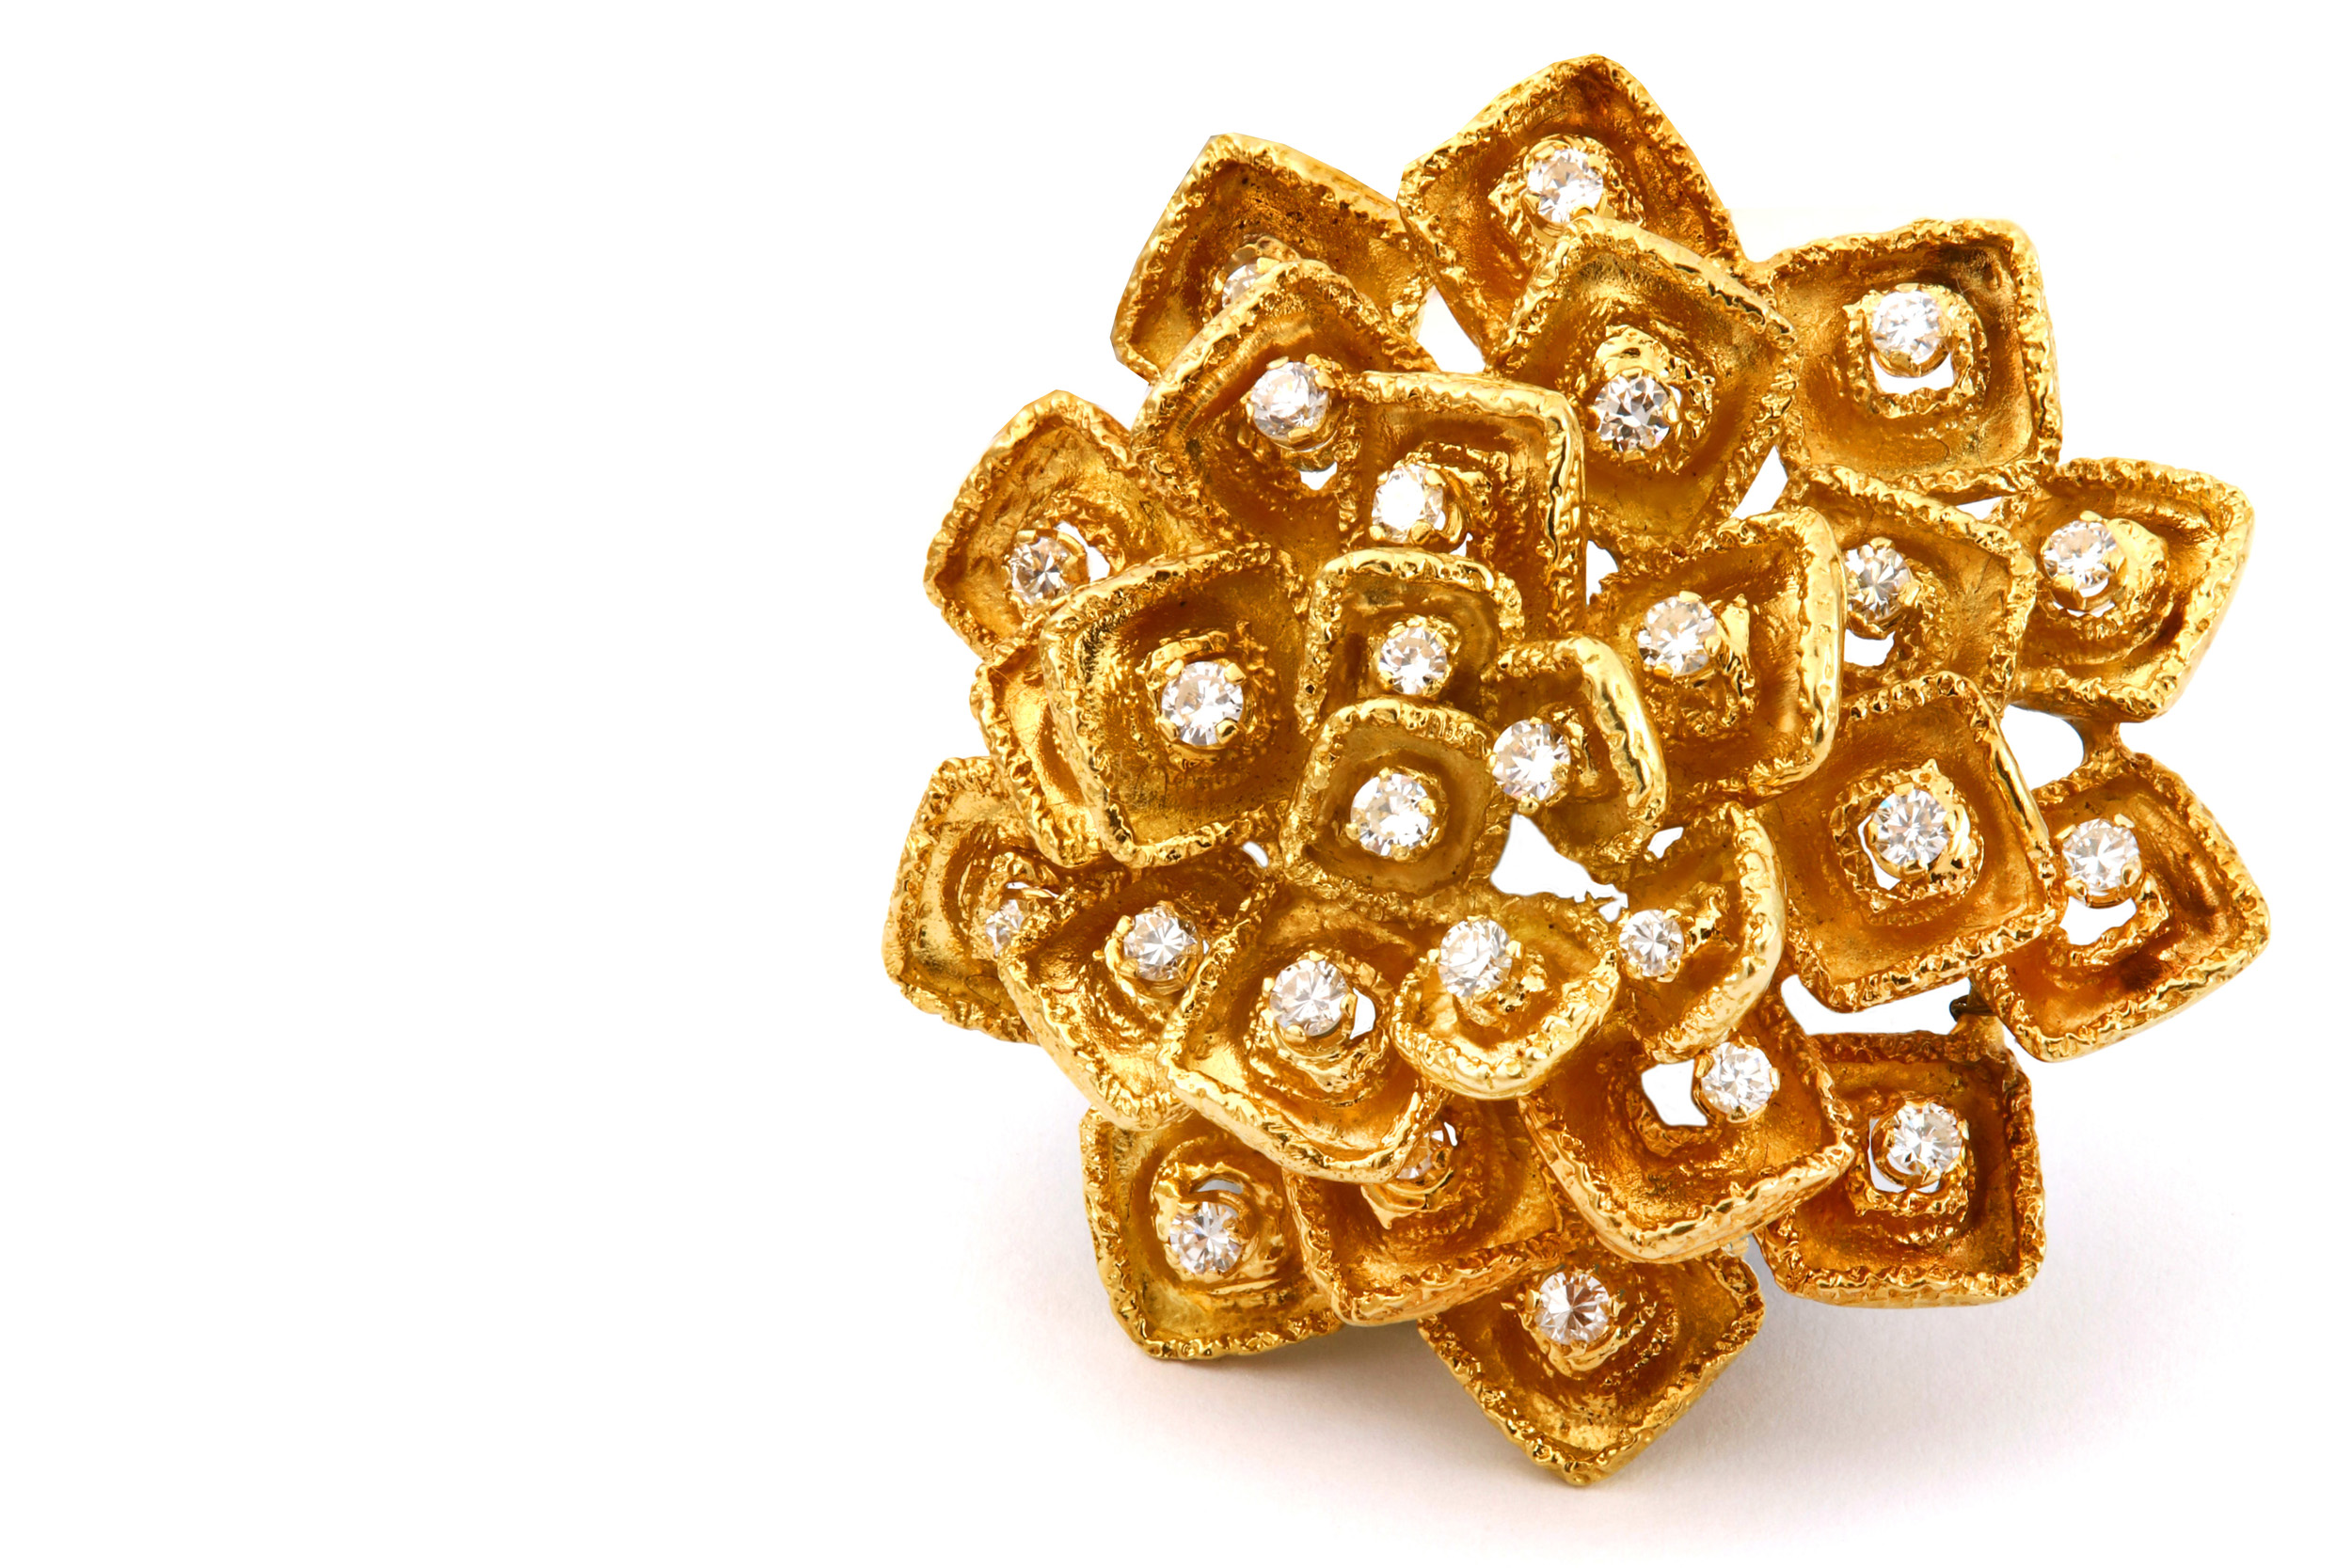 Lot 36 - A gold and diamond brooch, by Ben Rosenfeld, 1969